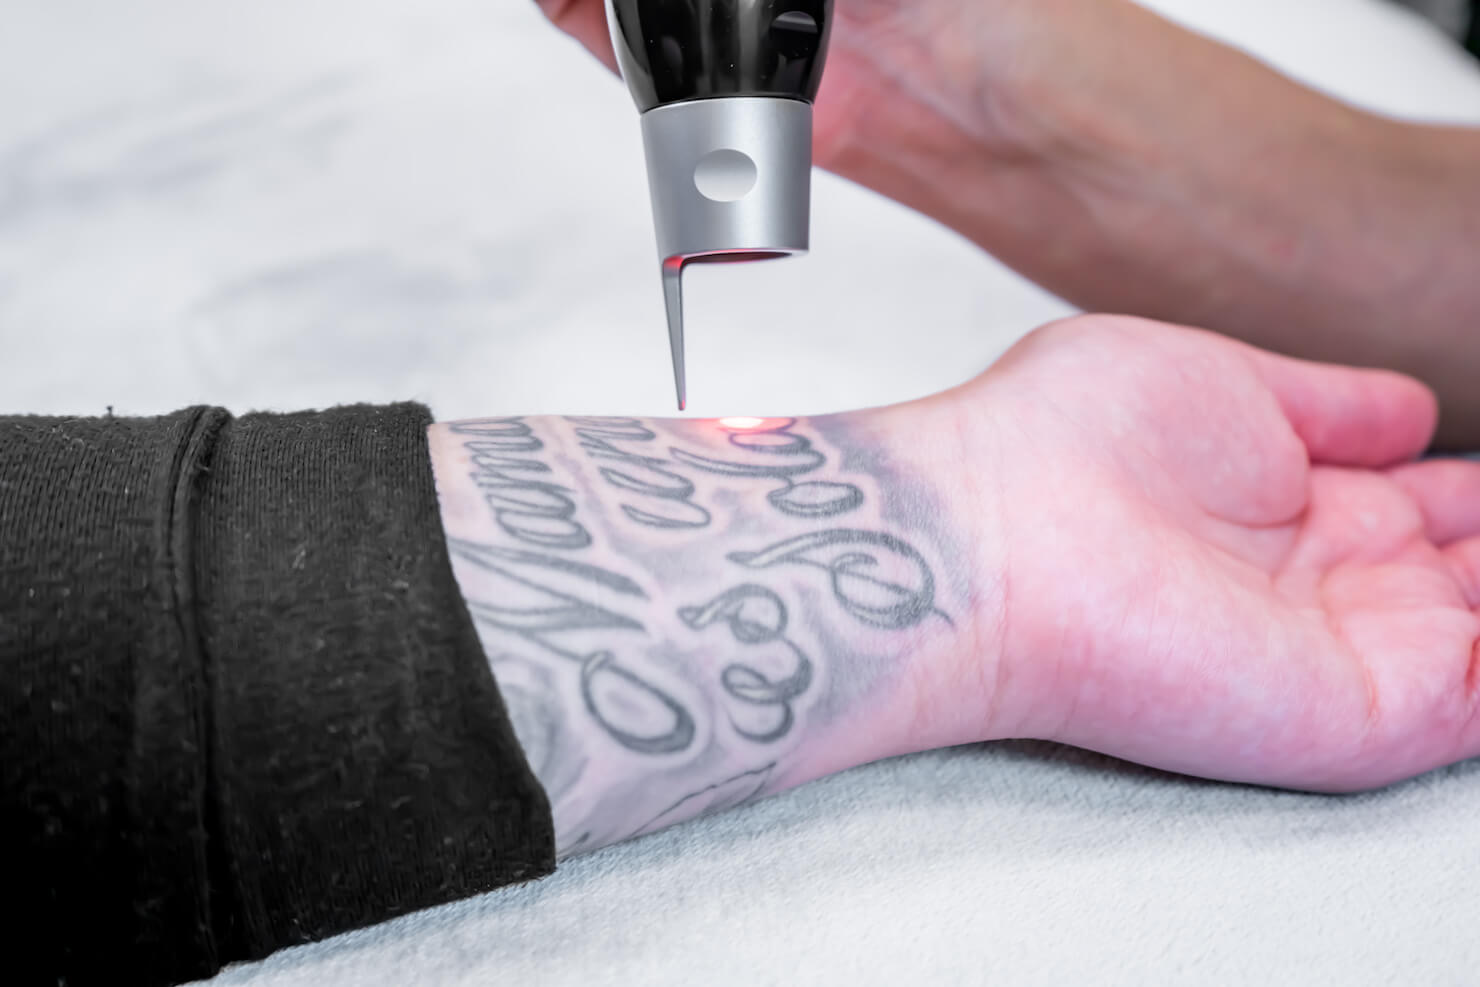 close up of Picosure laser tattoo removal in surrey with technician